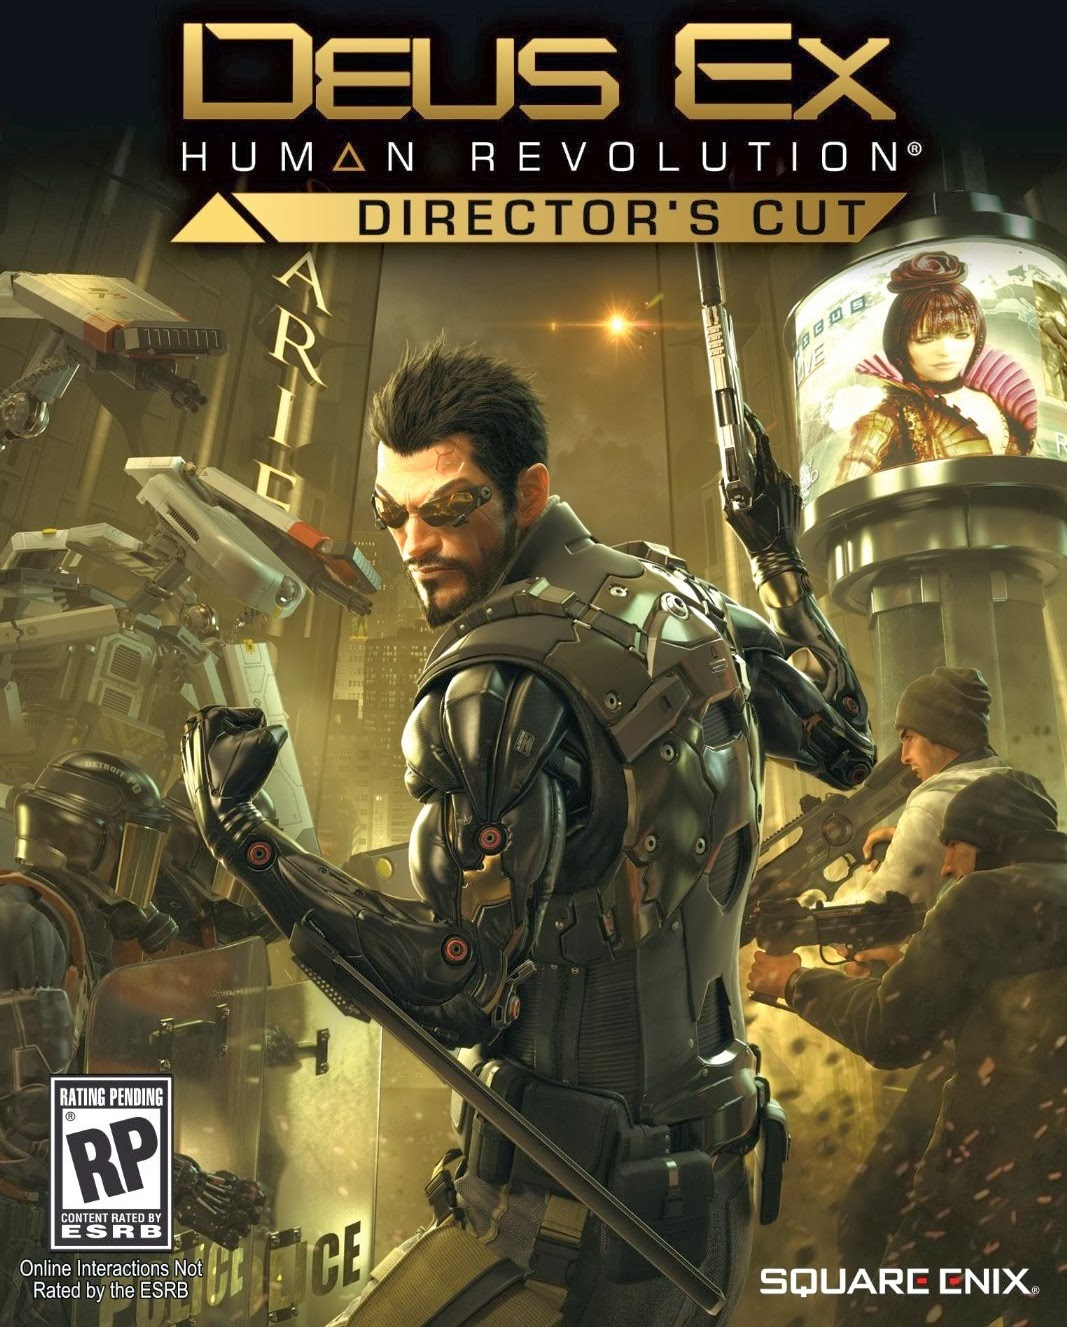 deus ex human revolution directors cut wallpapers - Deus Ex Human Revolution Director s Cut review